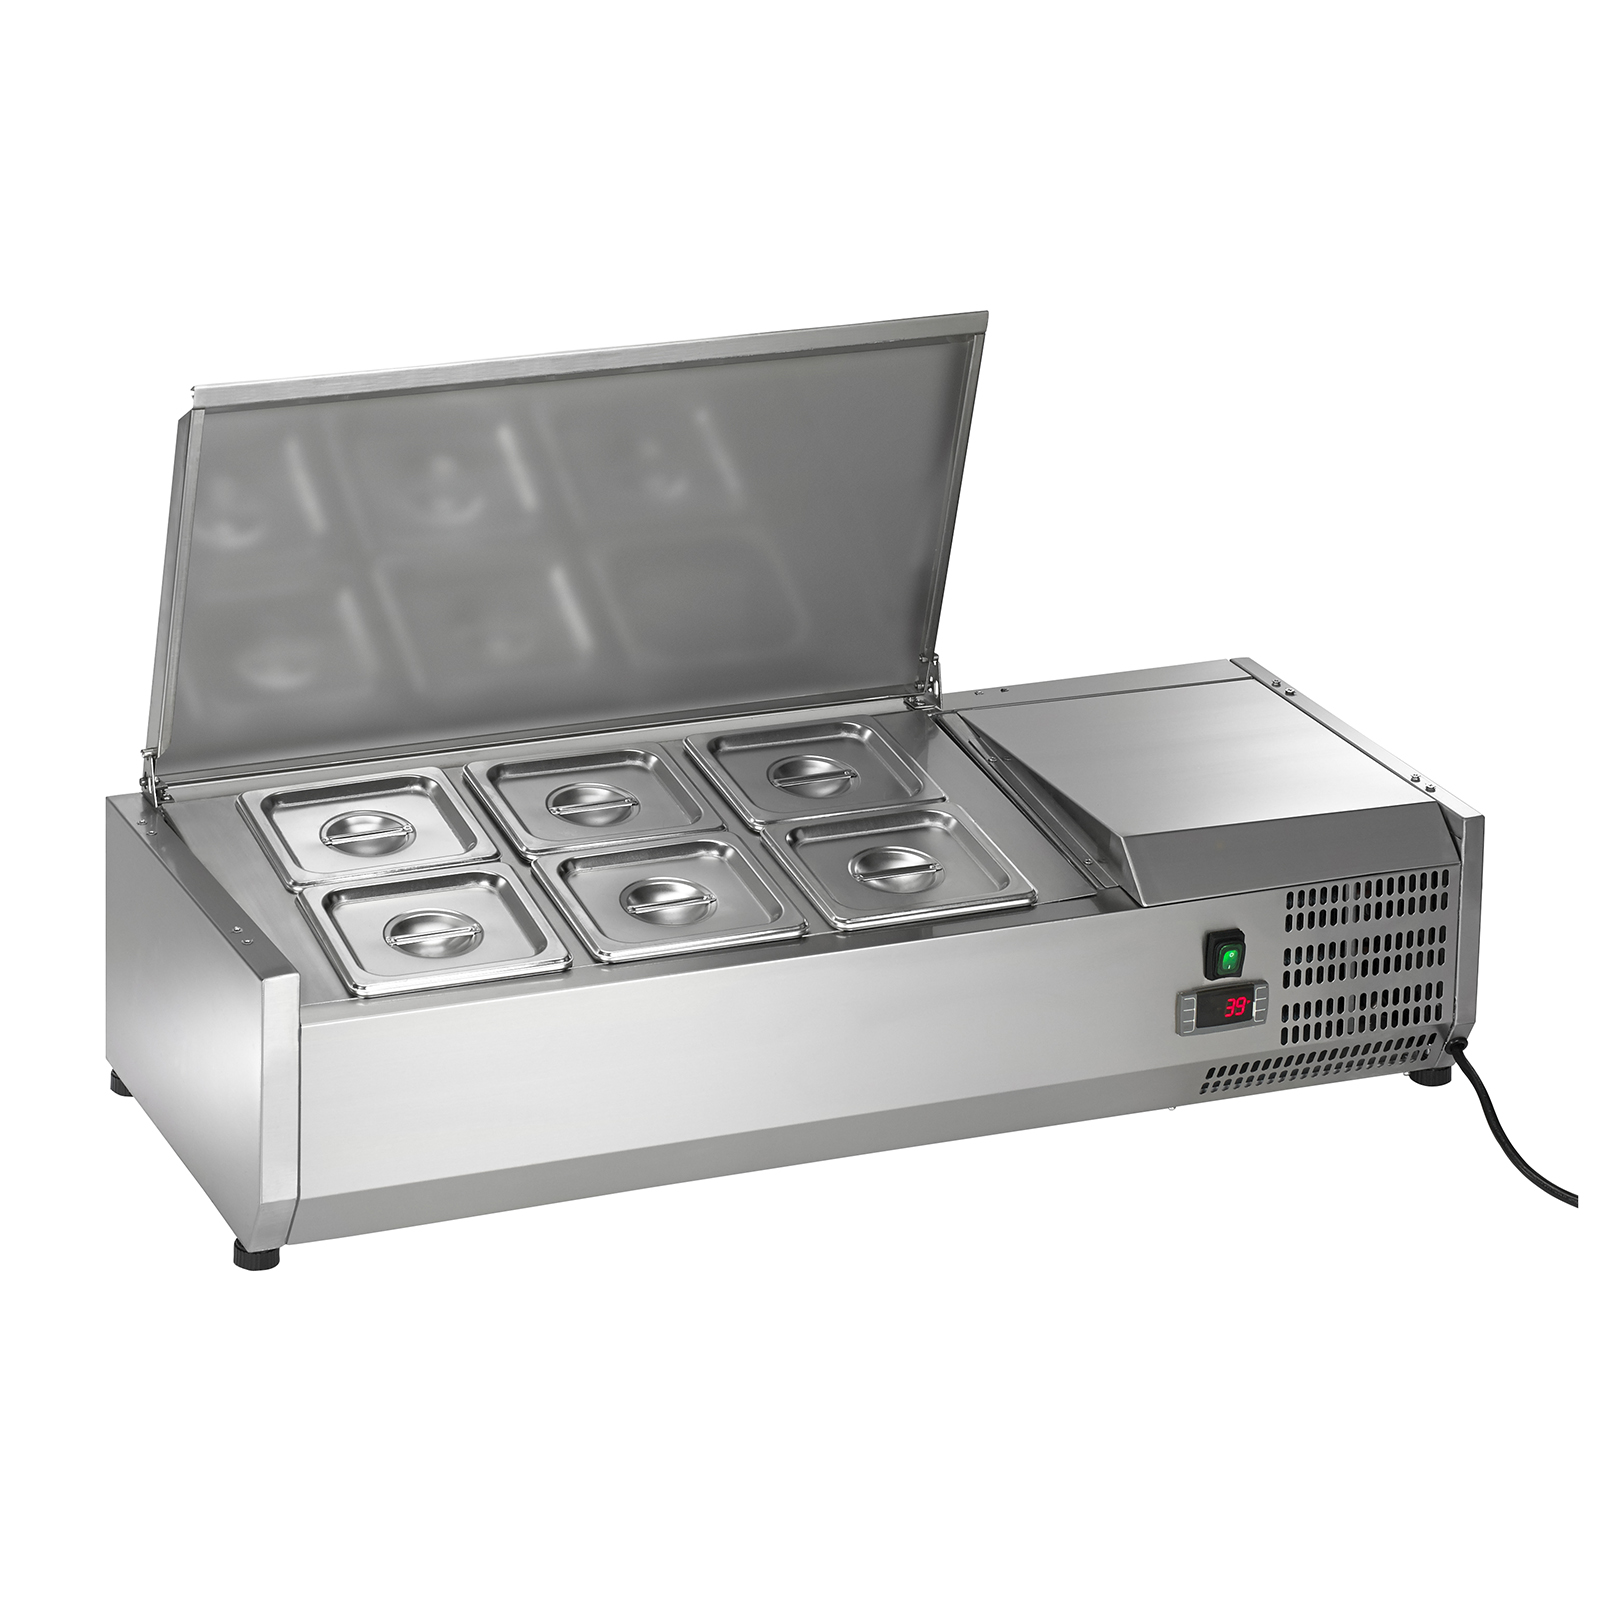 The Arctic Air ACP40 refrigerated countertop prep unit measures 40 inches wide and features a 6-pan topping rail to ensure your sandwich and salad ingredients are held at crisp, safe temperatures while on the prep line. The ACP40 commercial prep unit boasts a wide range of features at a superior value. The Arctic Air ACP40 refrigerated prep rail has an attractive, durable smooth stainless steel interior, exterior and lift-up cover. The countertop prep unit maintains a temperature of 33 to 41 degrees Fahrenheit prominently displayed on its bright LED screen. This Arctic Air refrigerated prep unit features scratch resistant plastic fic to protect your counter surface. The ACP40 countertop prep rail offer value and performance for your commercial foodservice.